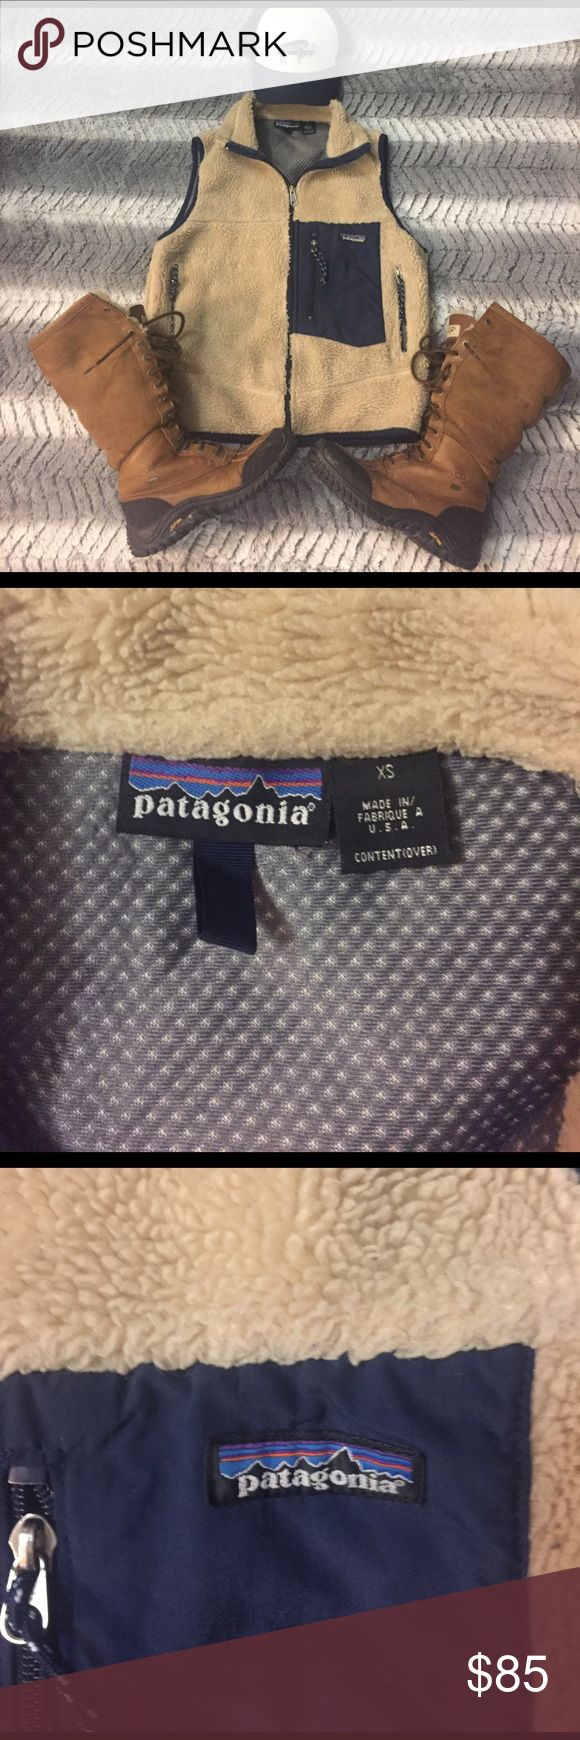 Patagonia Retro Vest In excellent used condition! This is a ***men's xs that fits a women's s-m.*** Love this just don't wear it enough because its a tad big on me! Would love to trade for some betters sweaters or retools. Bison Patagonia hat is also for sale in another post! Patagonia Jackets & Coats Vests